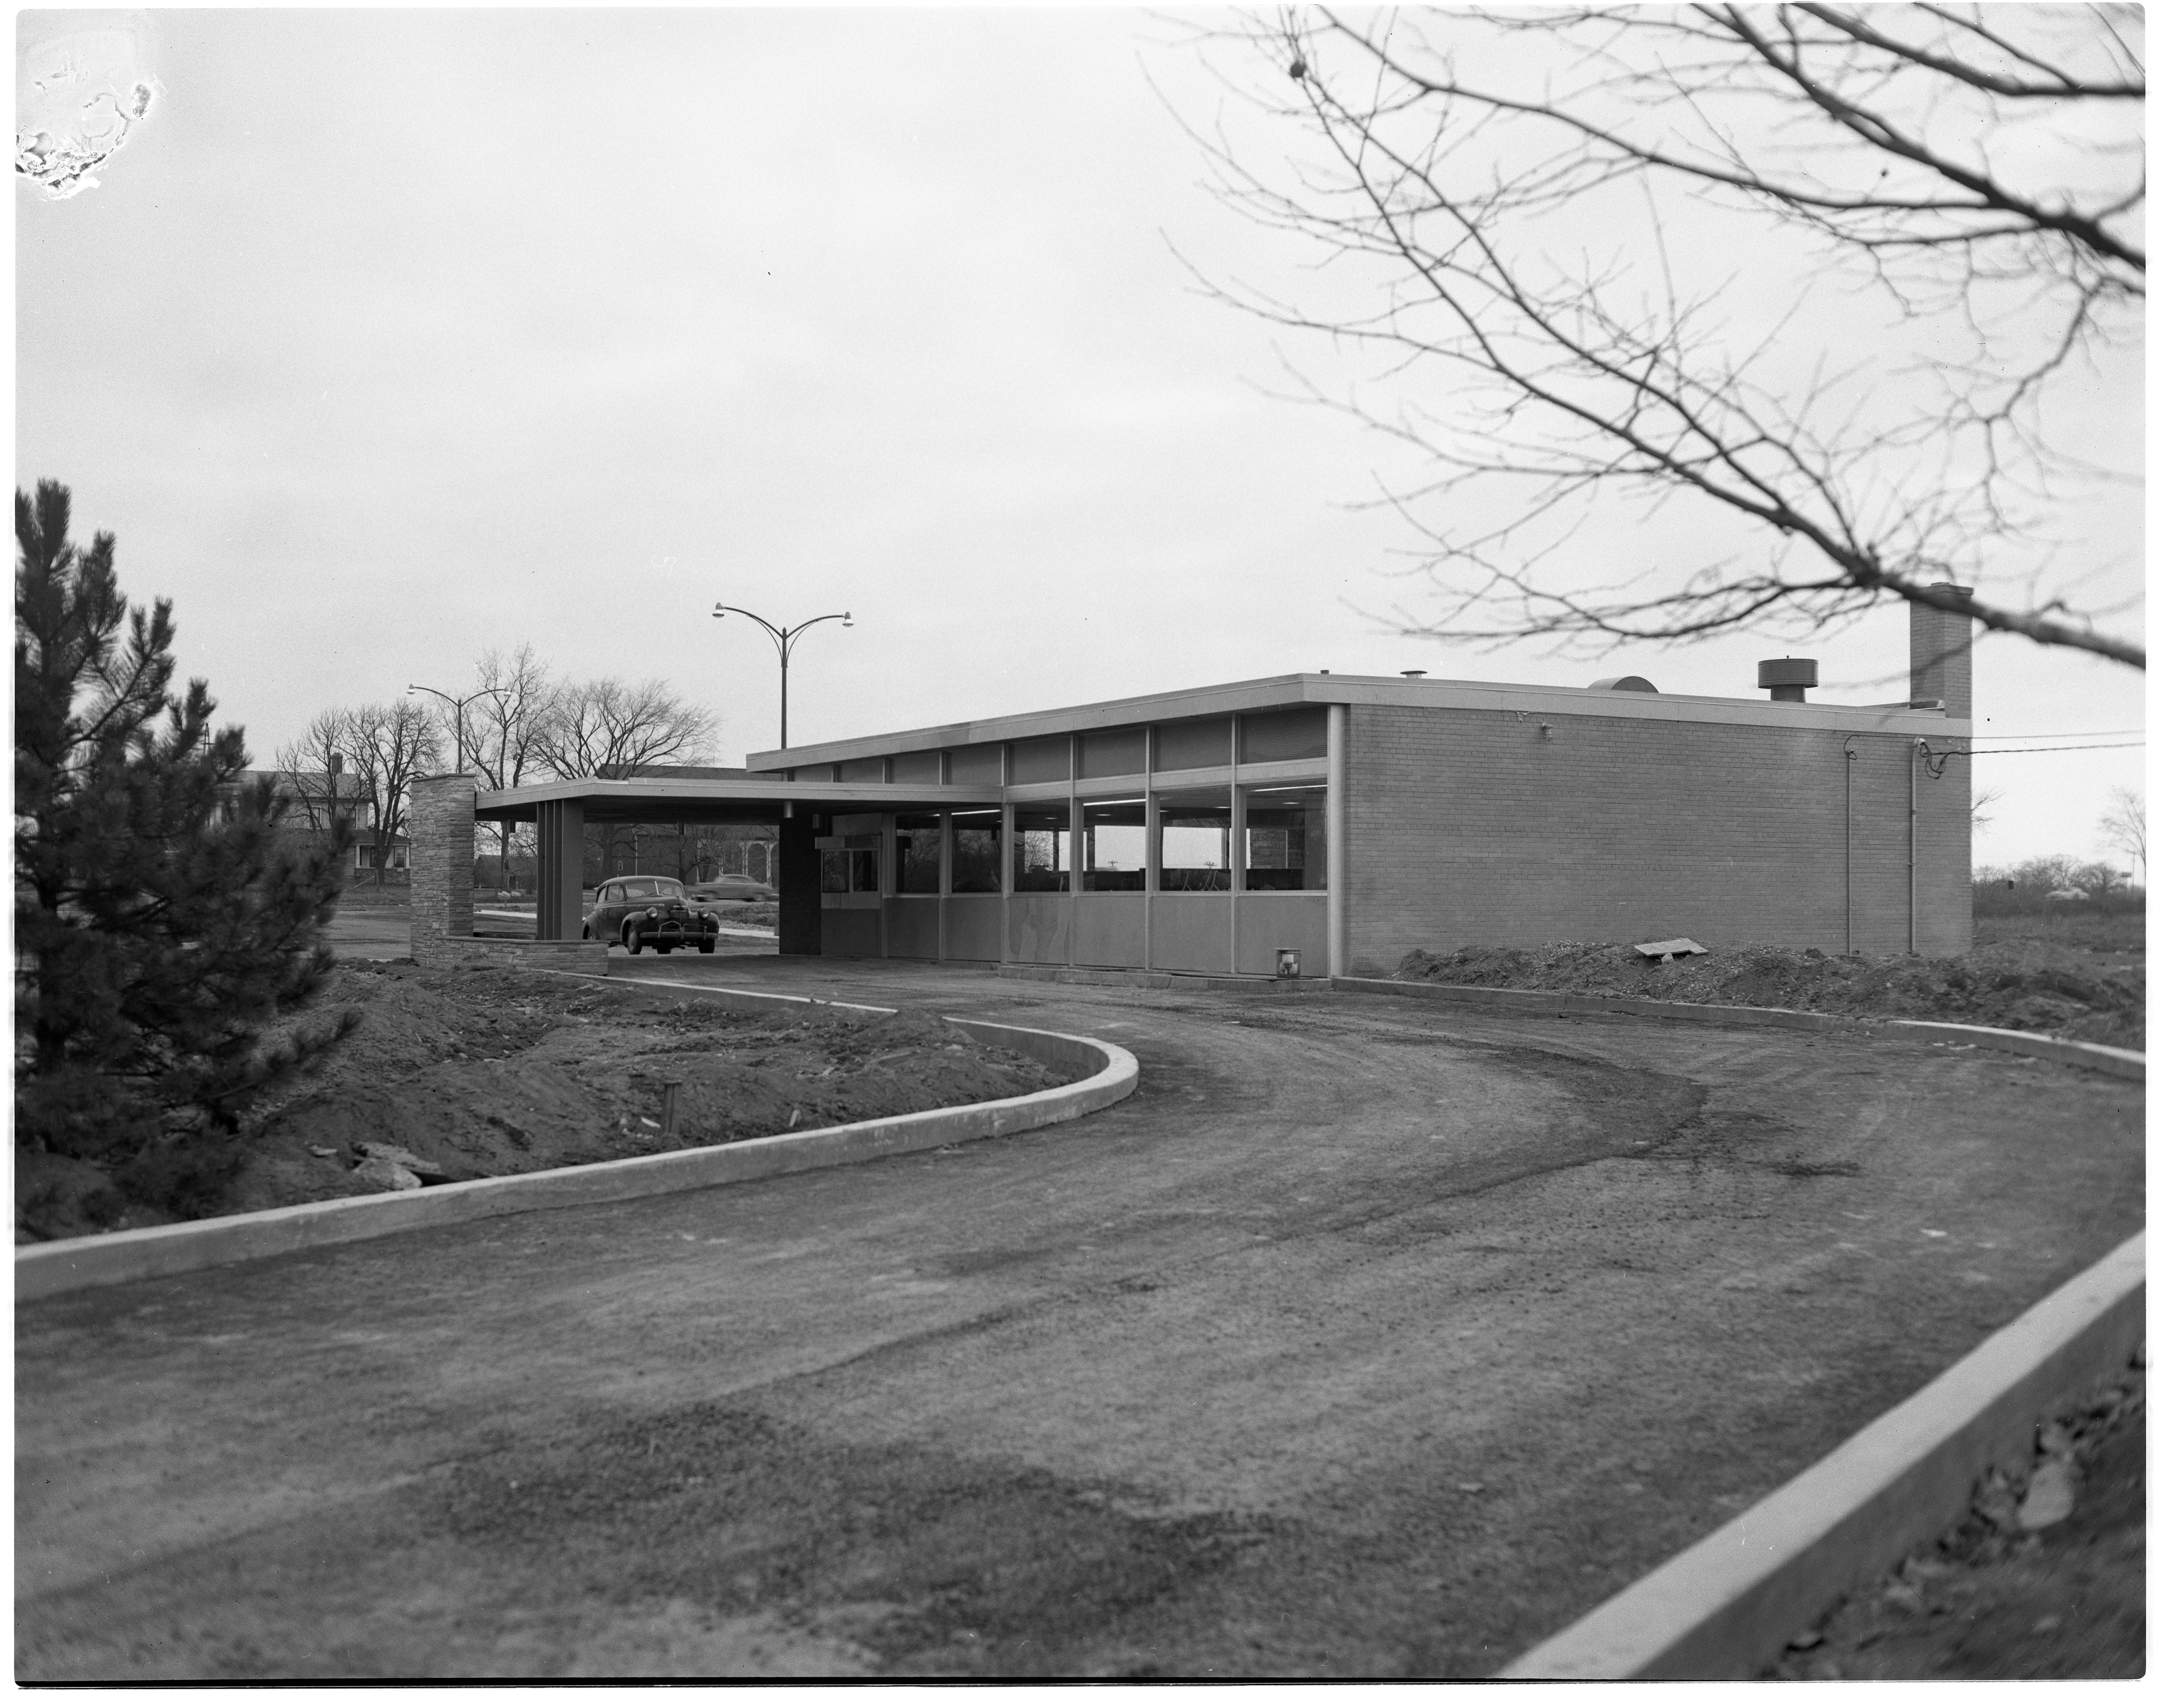 New State Savings Bank at Washtenaw Road and Pittsfield Boulevard, January 1955 image